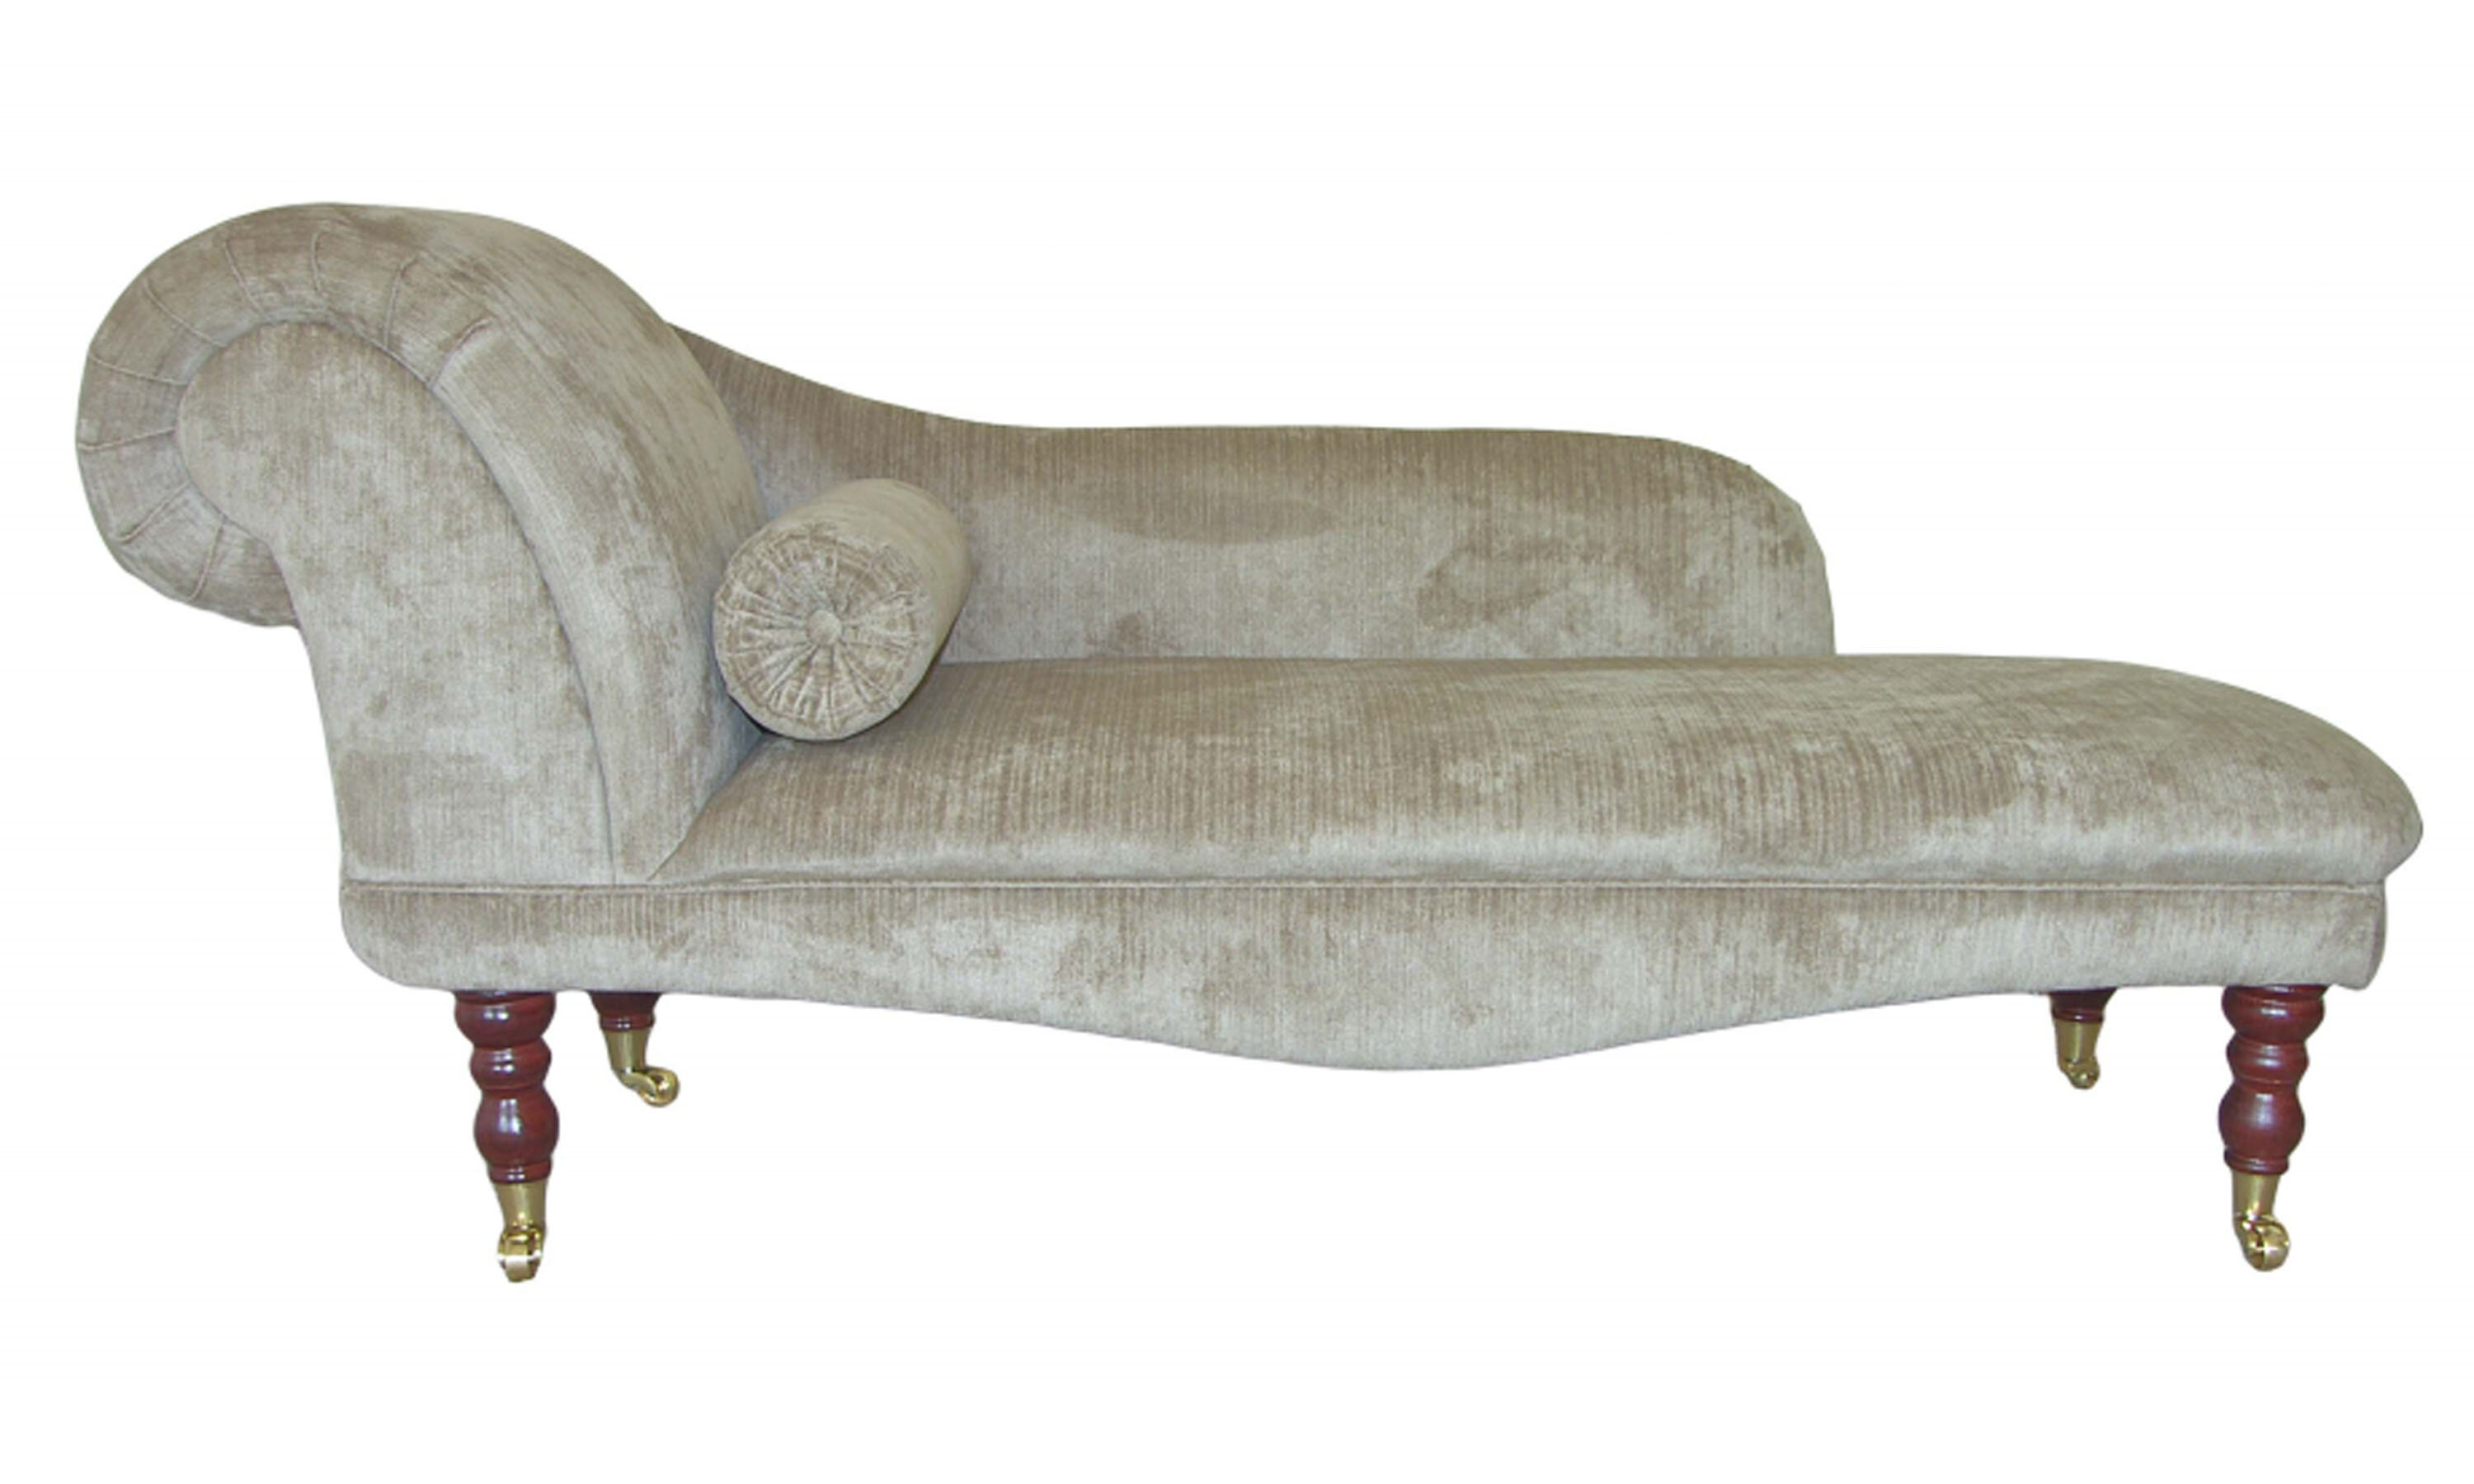 furniture roses swan excellent miniature cheap velvet chaise sale doll picture chair victorian floral w excellentctorian for of full lounge antique bedroom chairish house design size